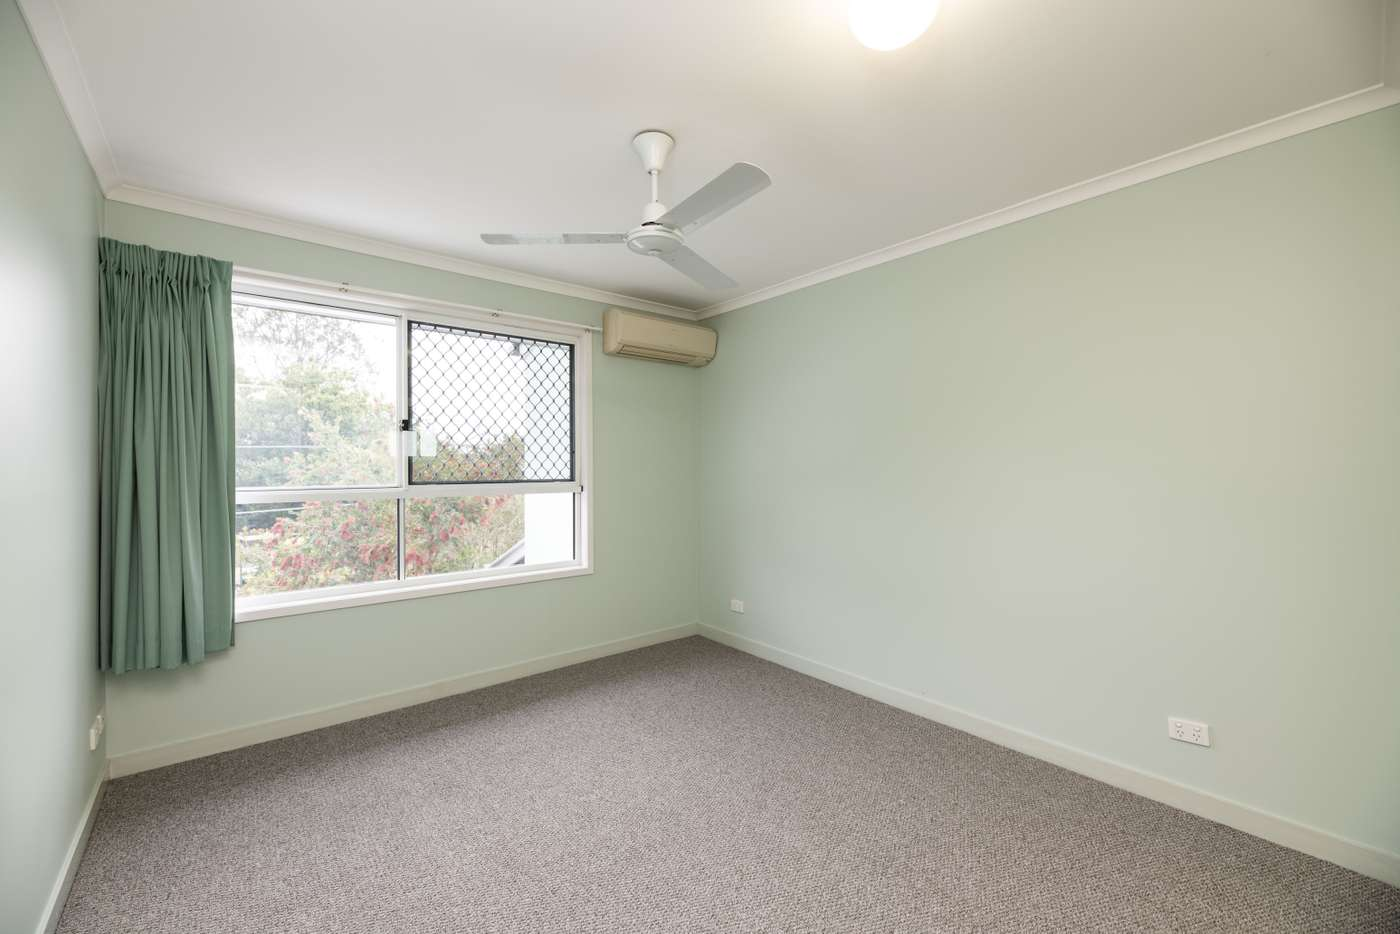 Seventh view of Homely townhouse listing, 2/2 Hetherington Street, Herston QLD 4006